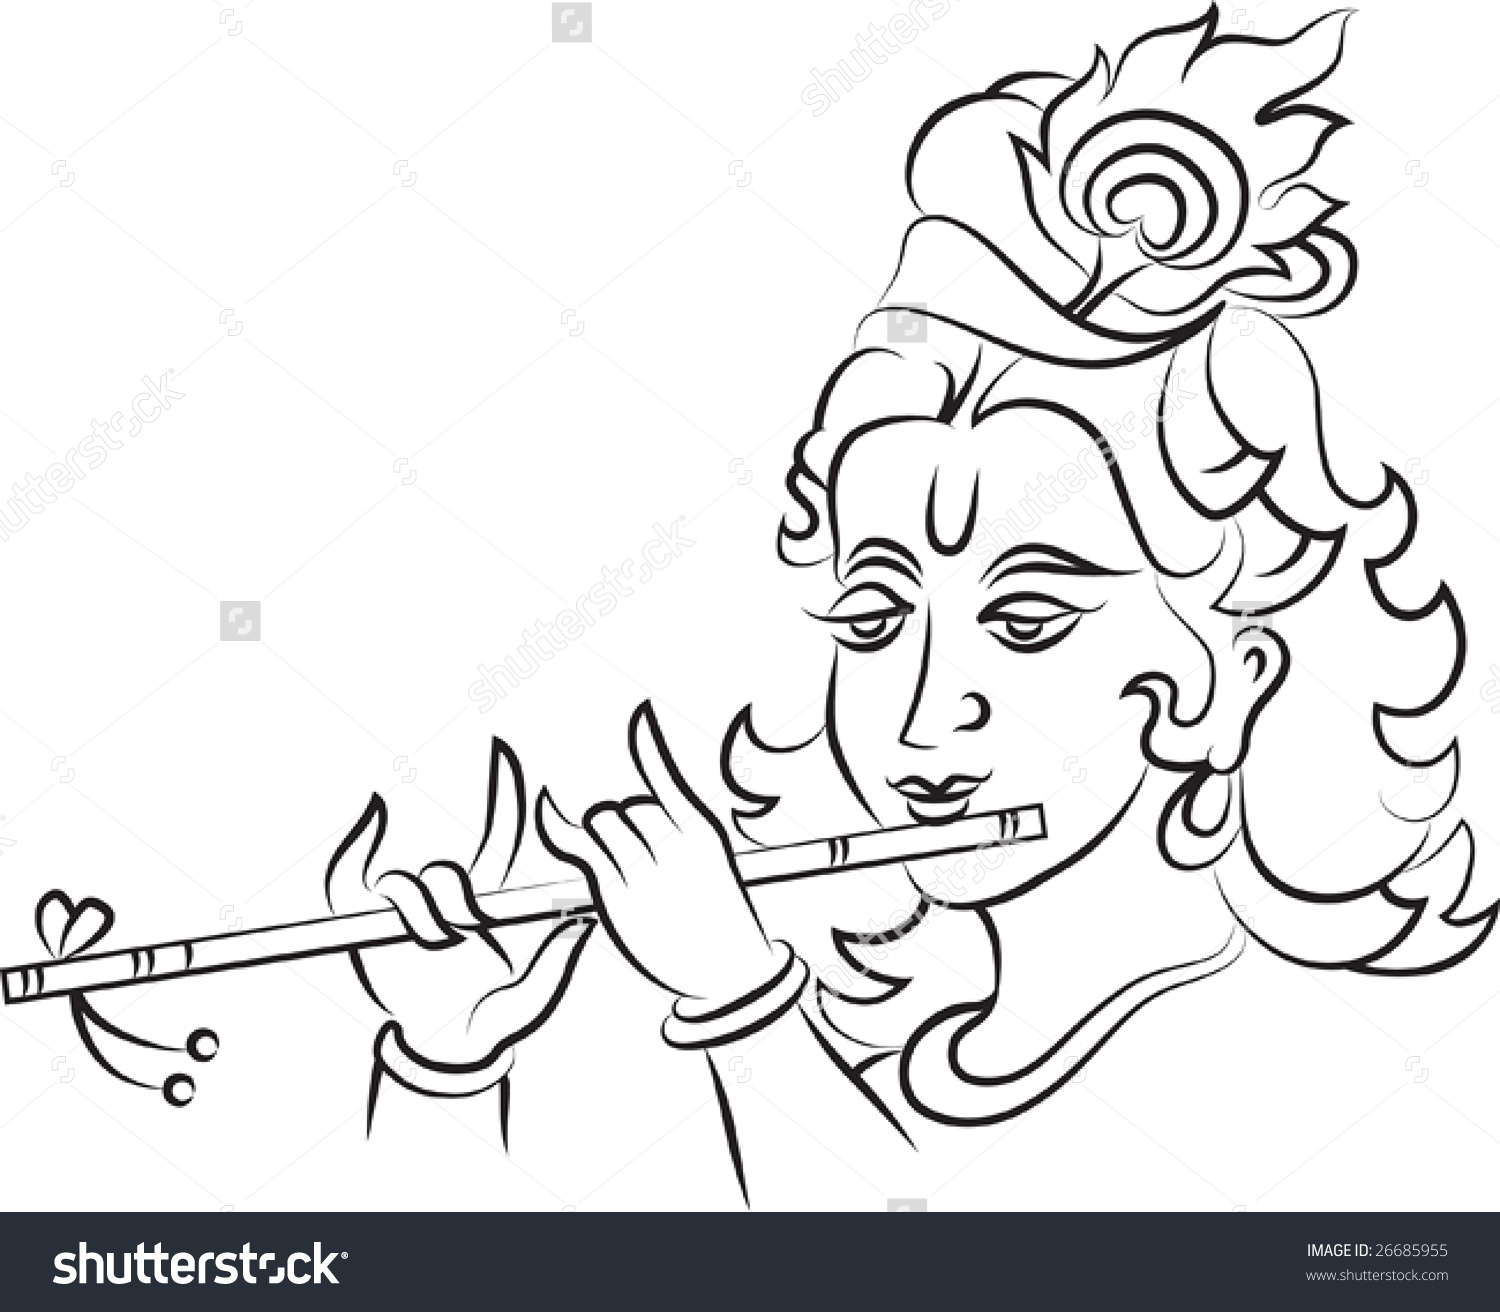 1500x1312 Simple Sketches Of Lord Krishna Simple Drawing Of Lord Krishna